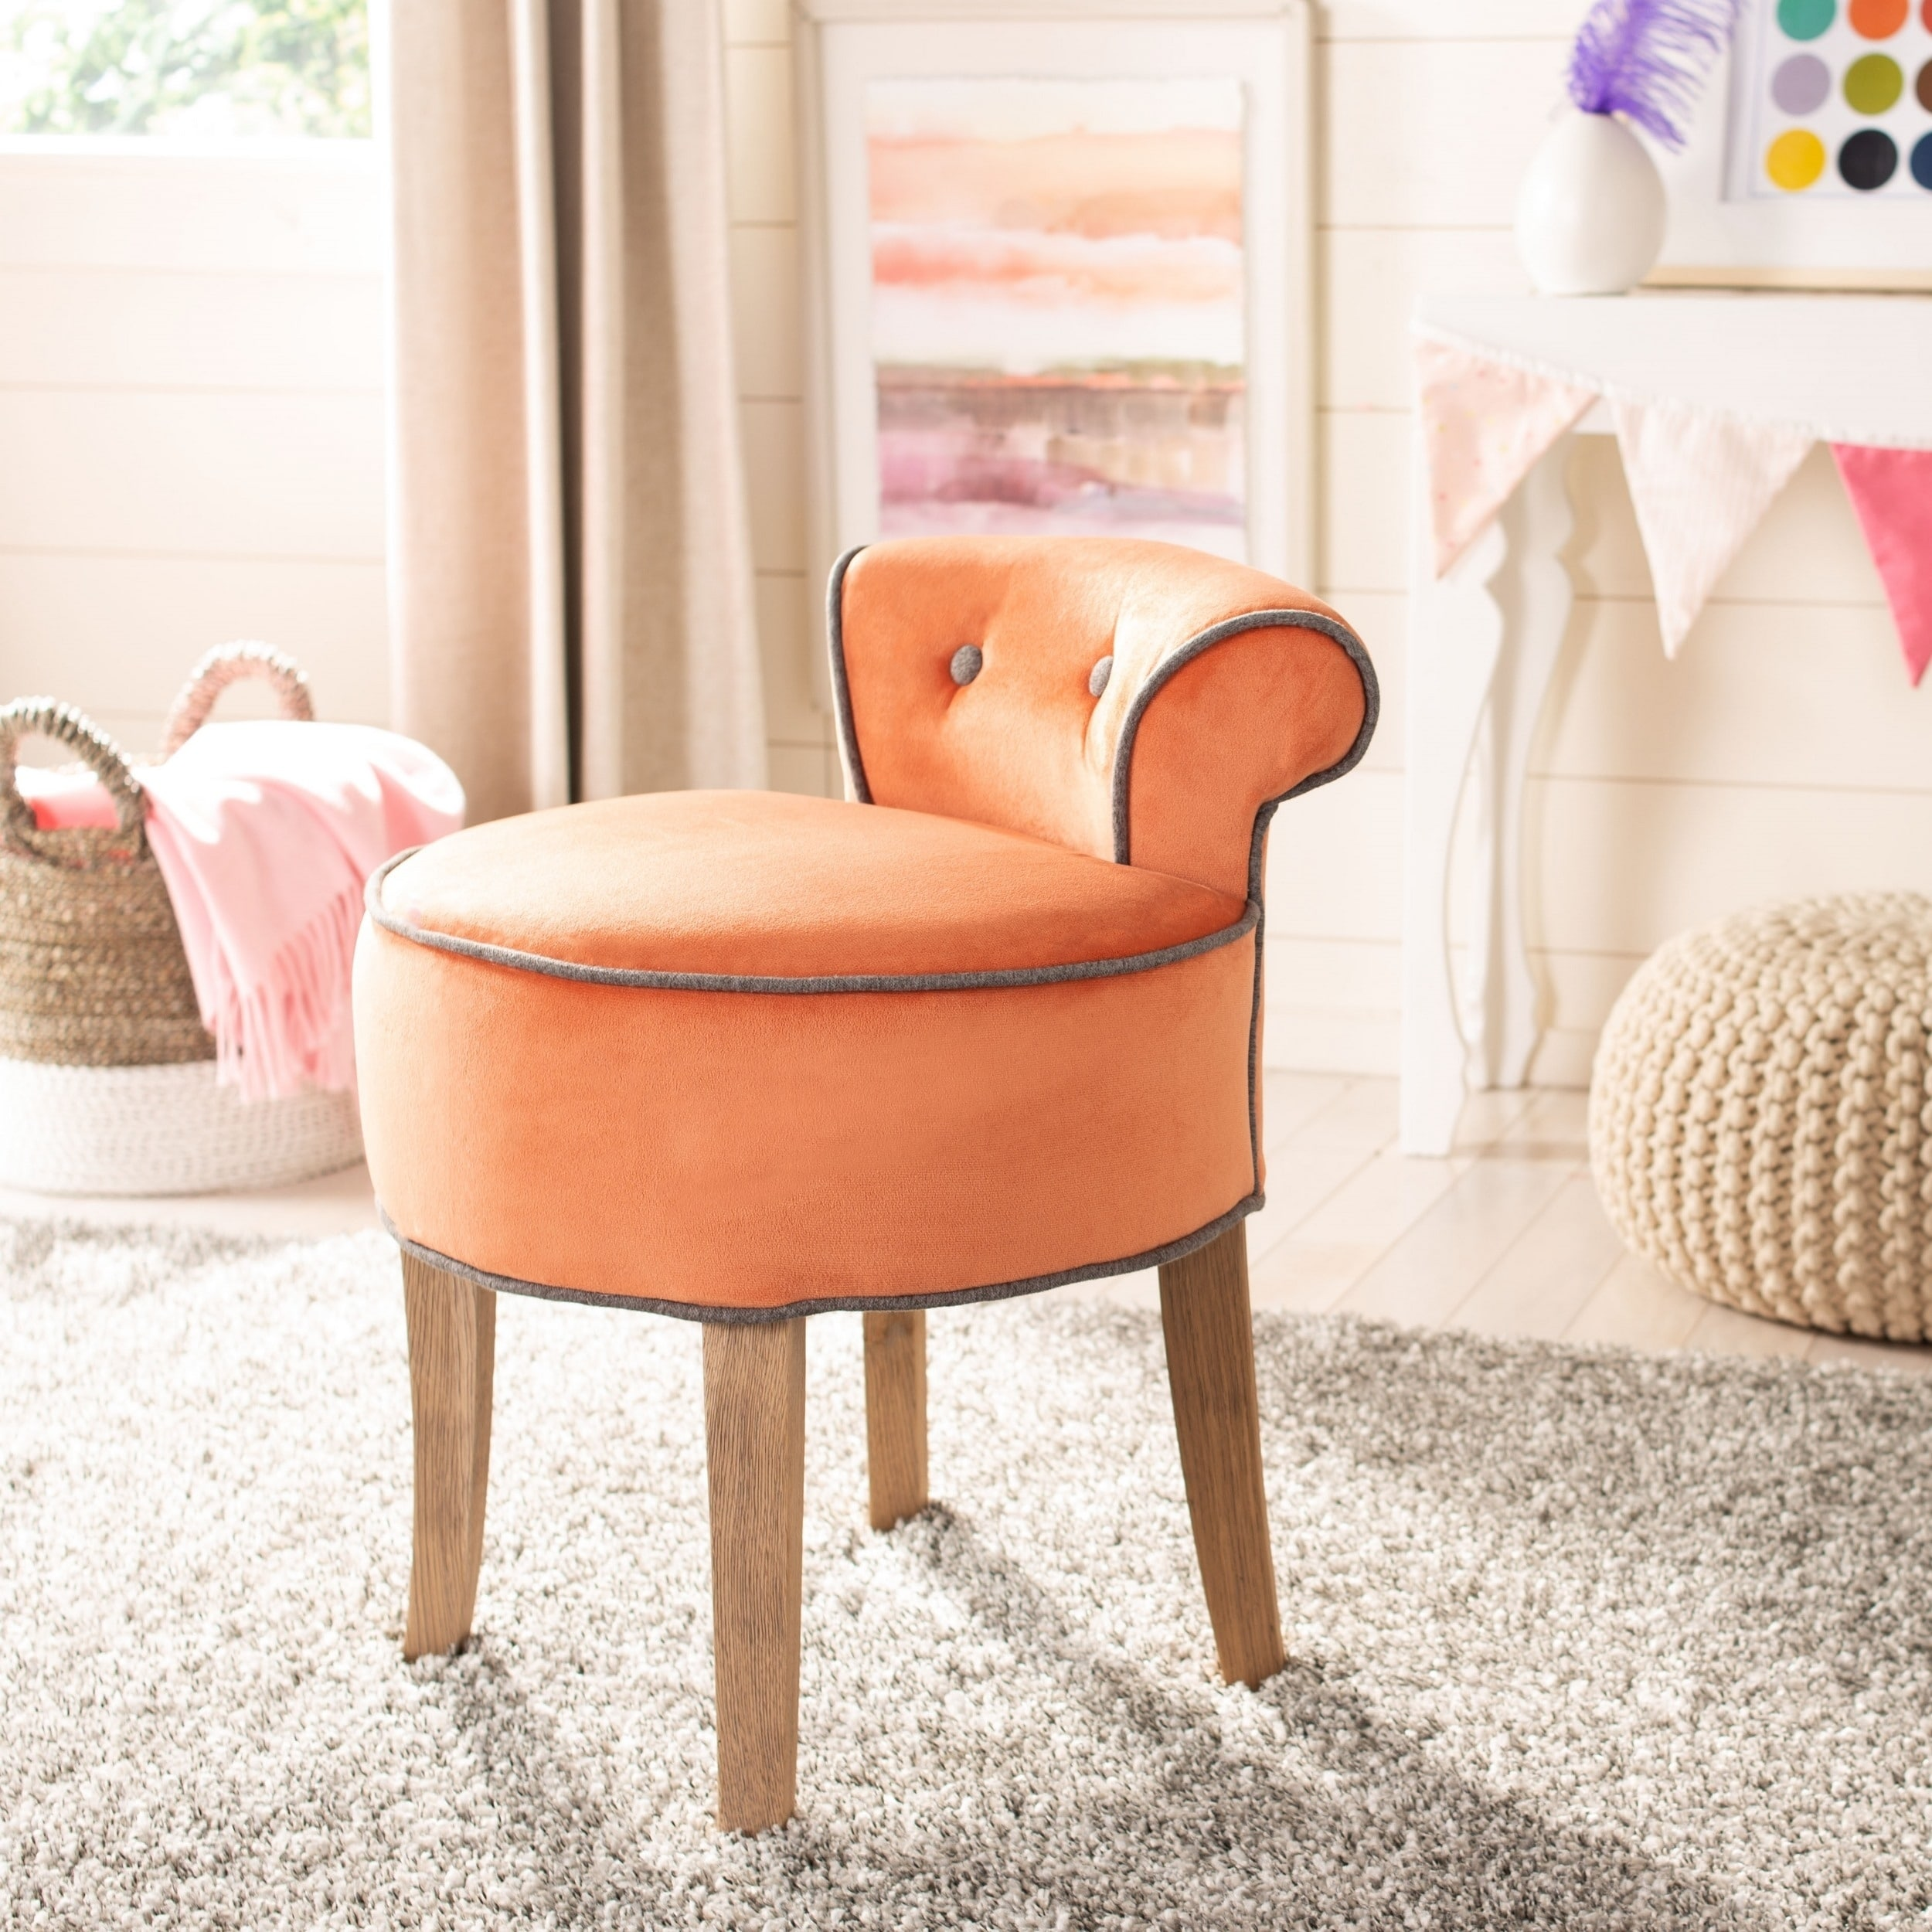 Orange Safavieh Living Room Chairs | Shop Online at Overstock